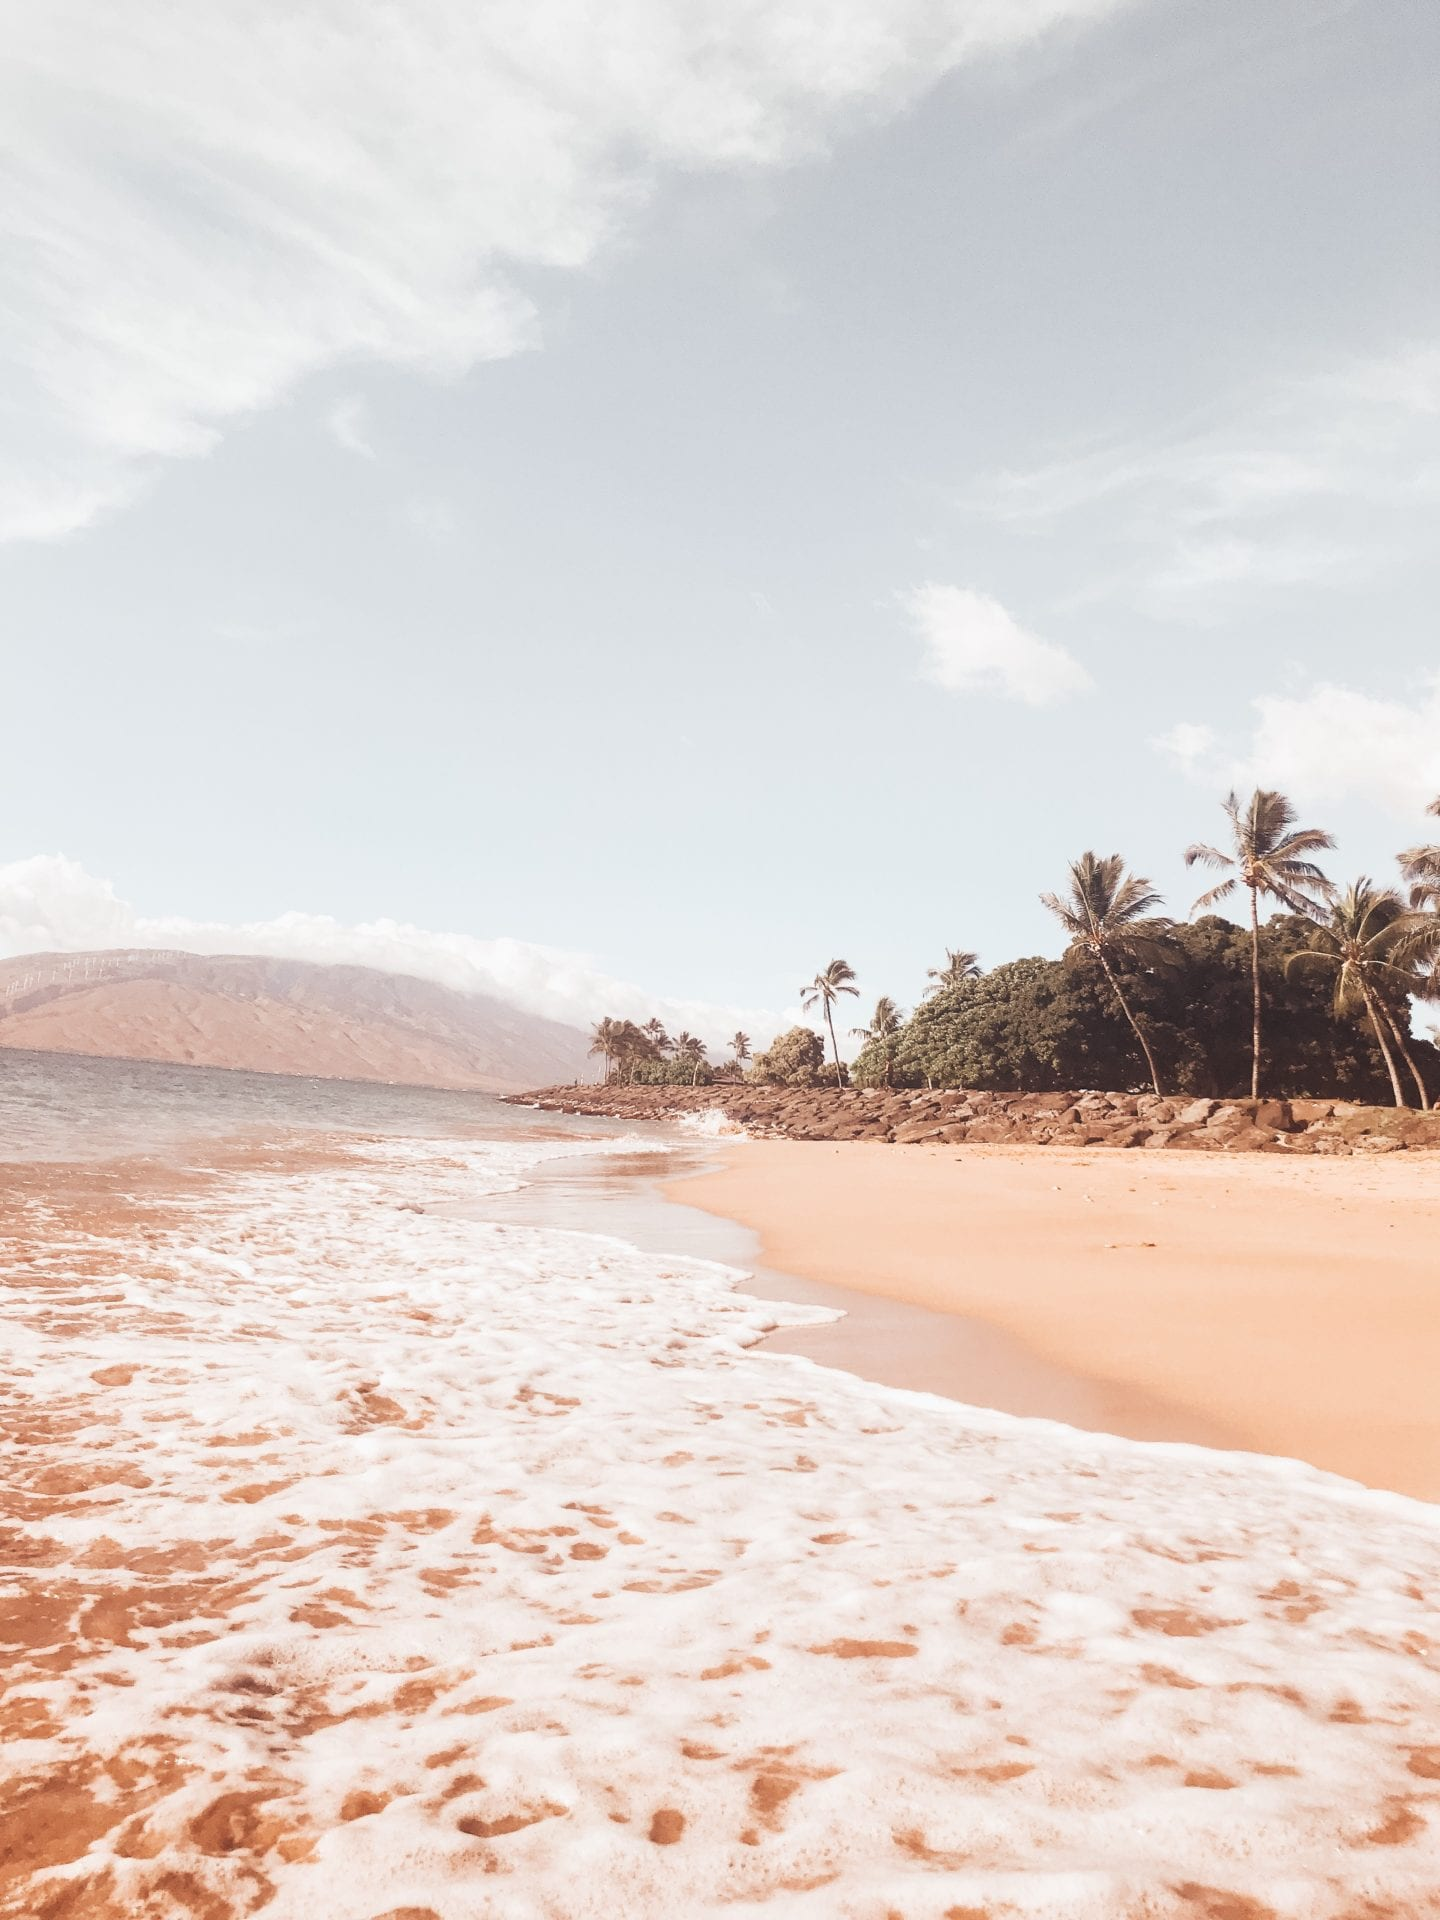 Hawaii Beaches I Maui travel guide I Hawaii Travel Guide I via justaddglam.com   Top Things to Do in Maui featured by top San Francisco travel blog, Just Add Glam: stroll along Maui beaches